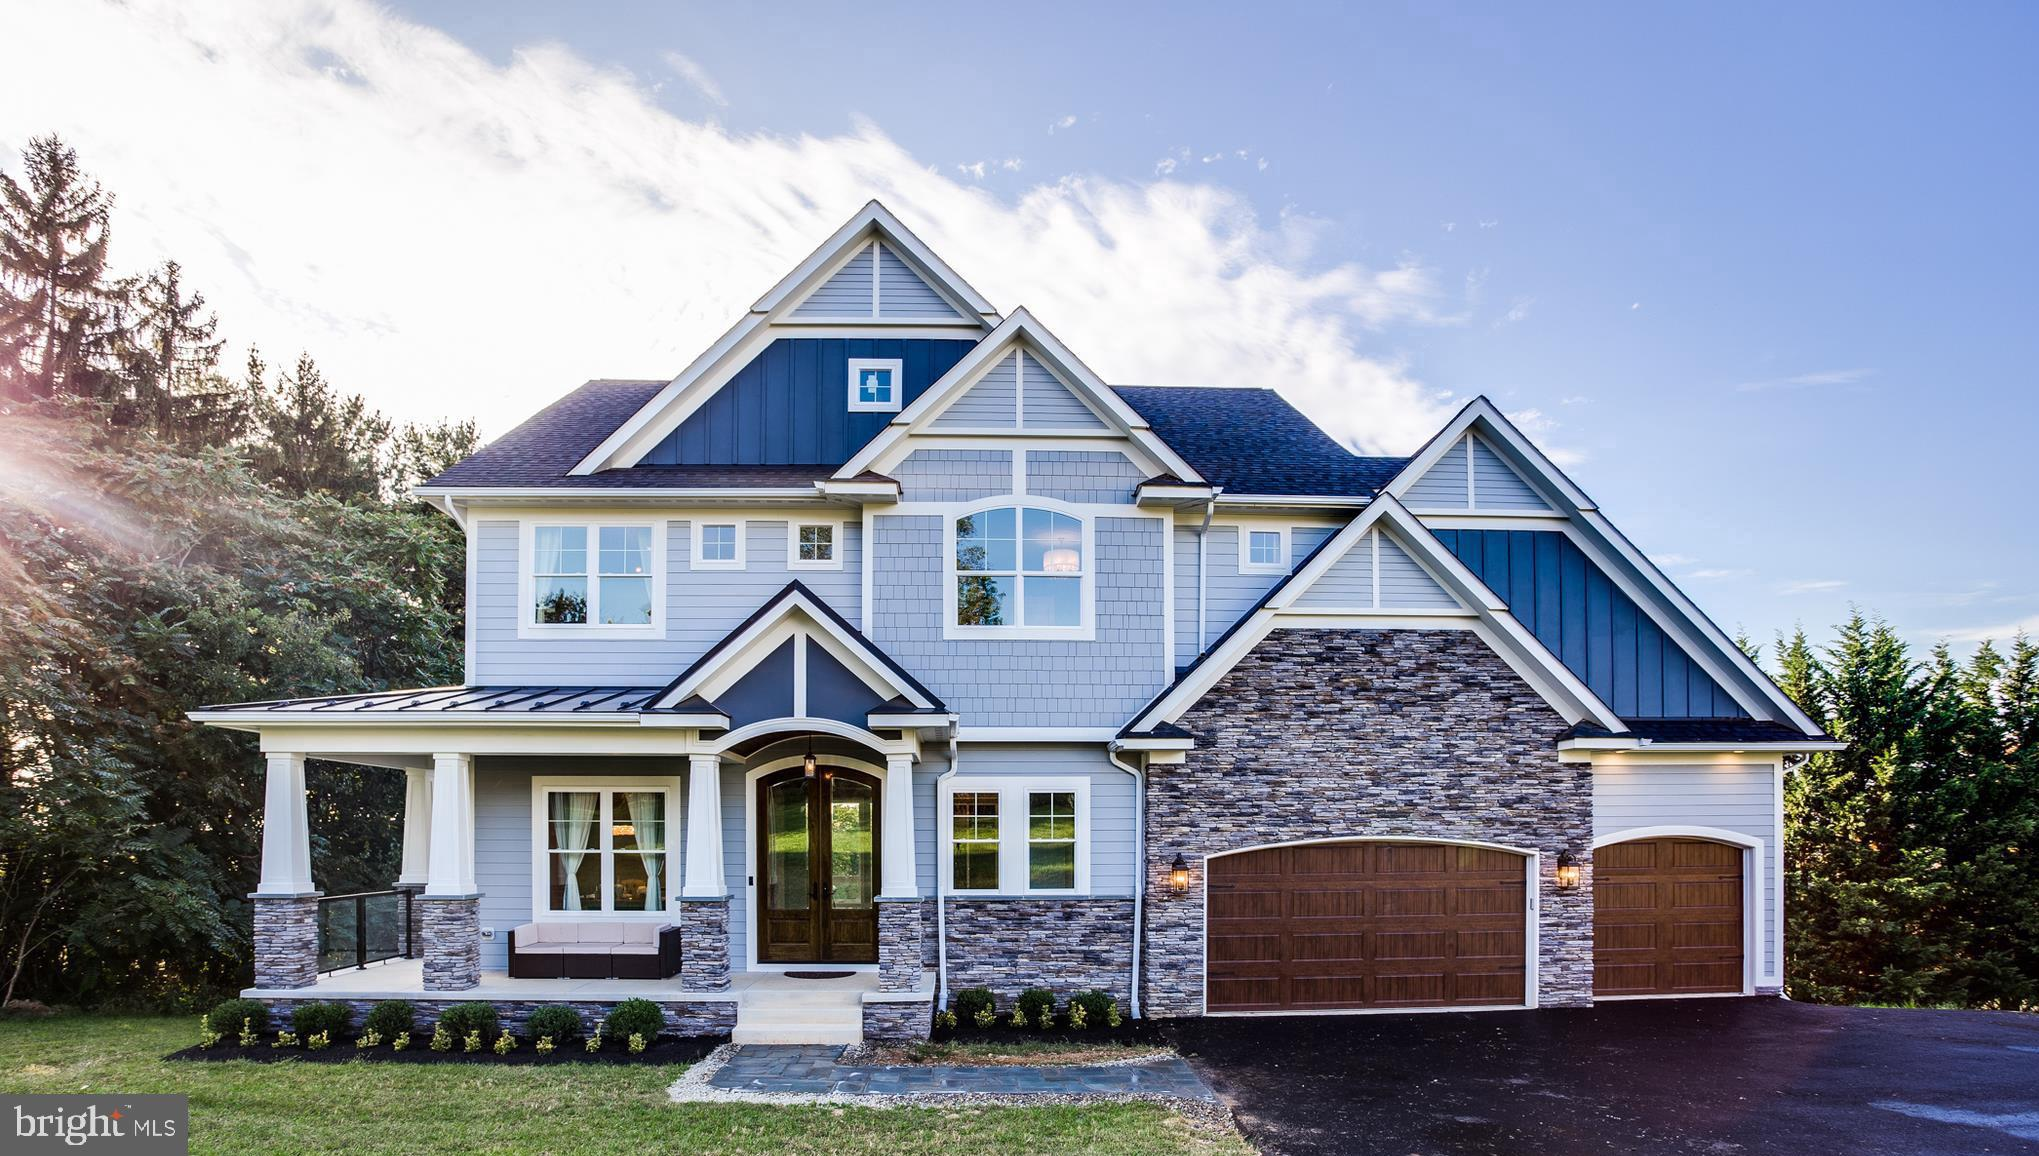 MISSION ROAD, JESSUP, MD 20794